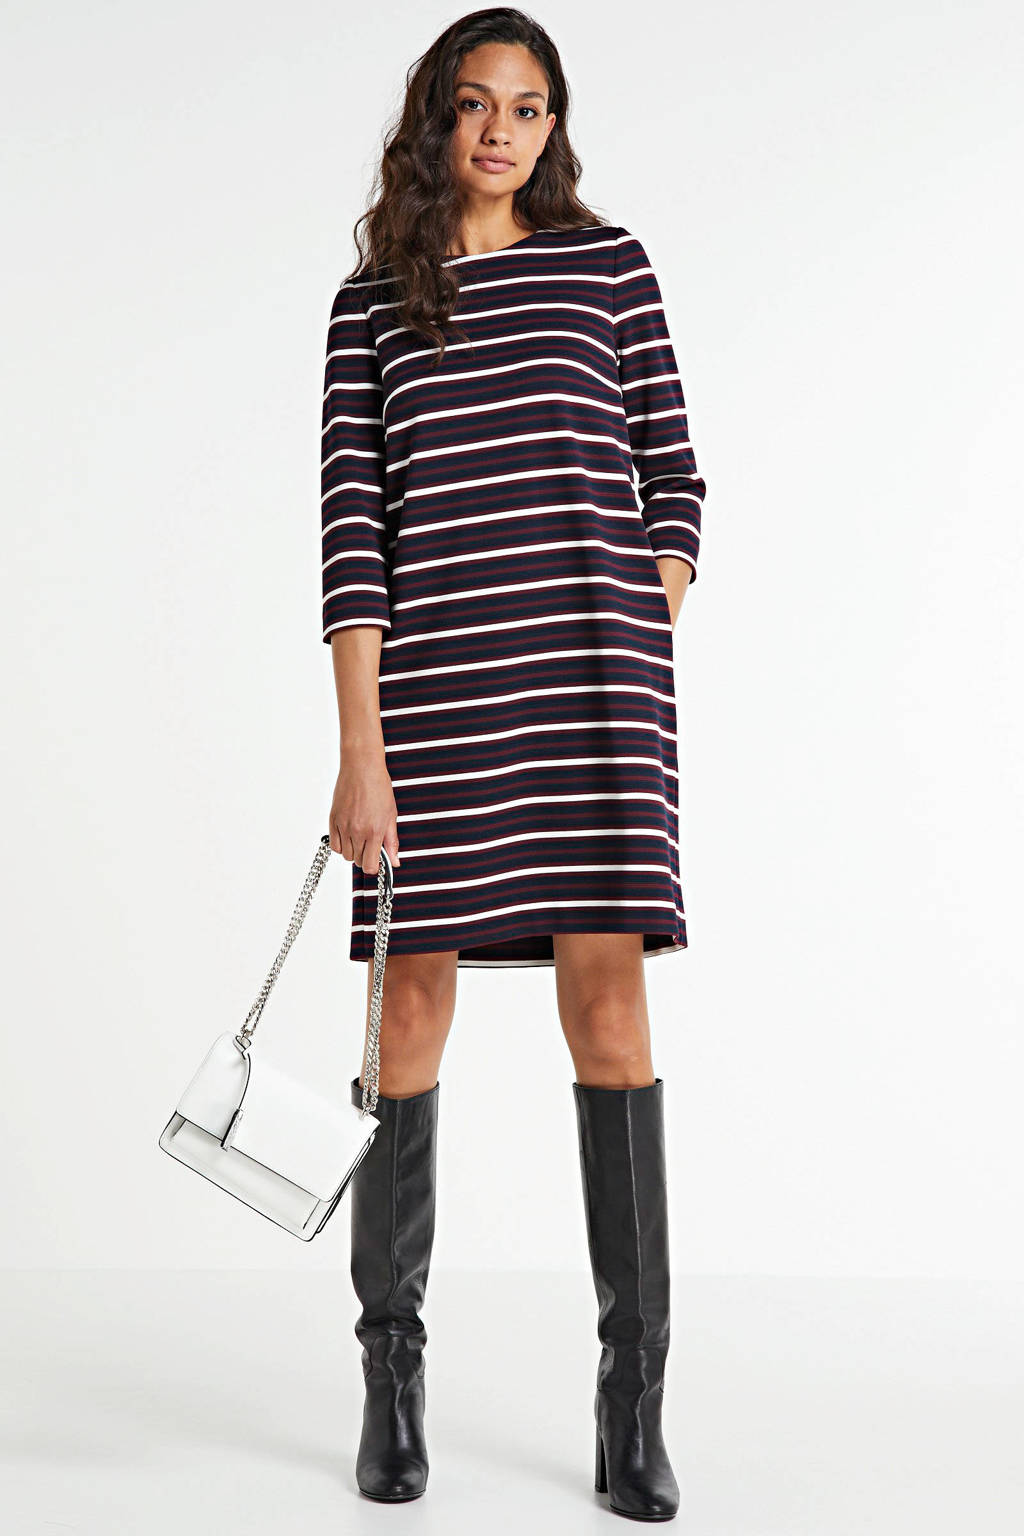 Tommy Hilfiger gestreepte jurk SHIFT TEXTURED SS DRESS 0e4 global stp desert sky, 0E4 Global Stp Desert Sky